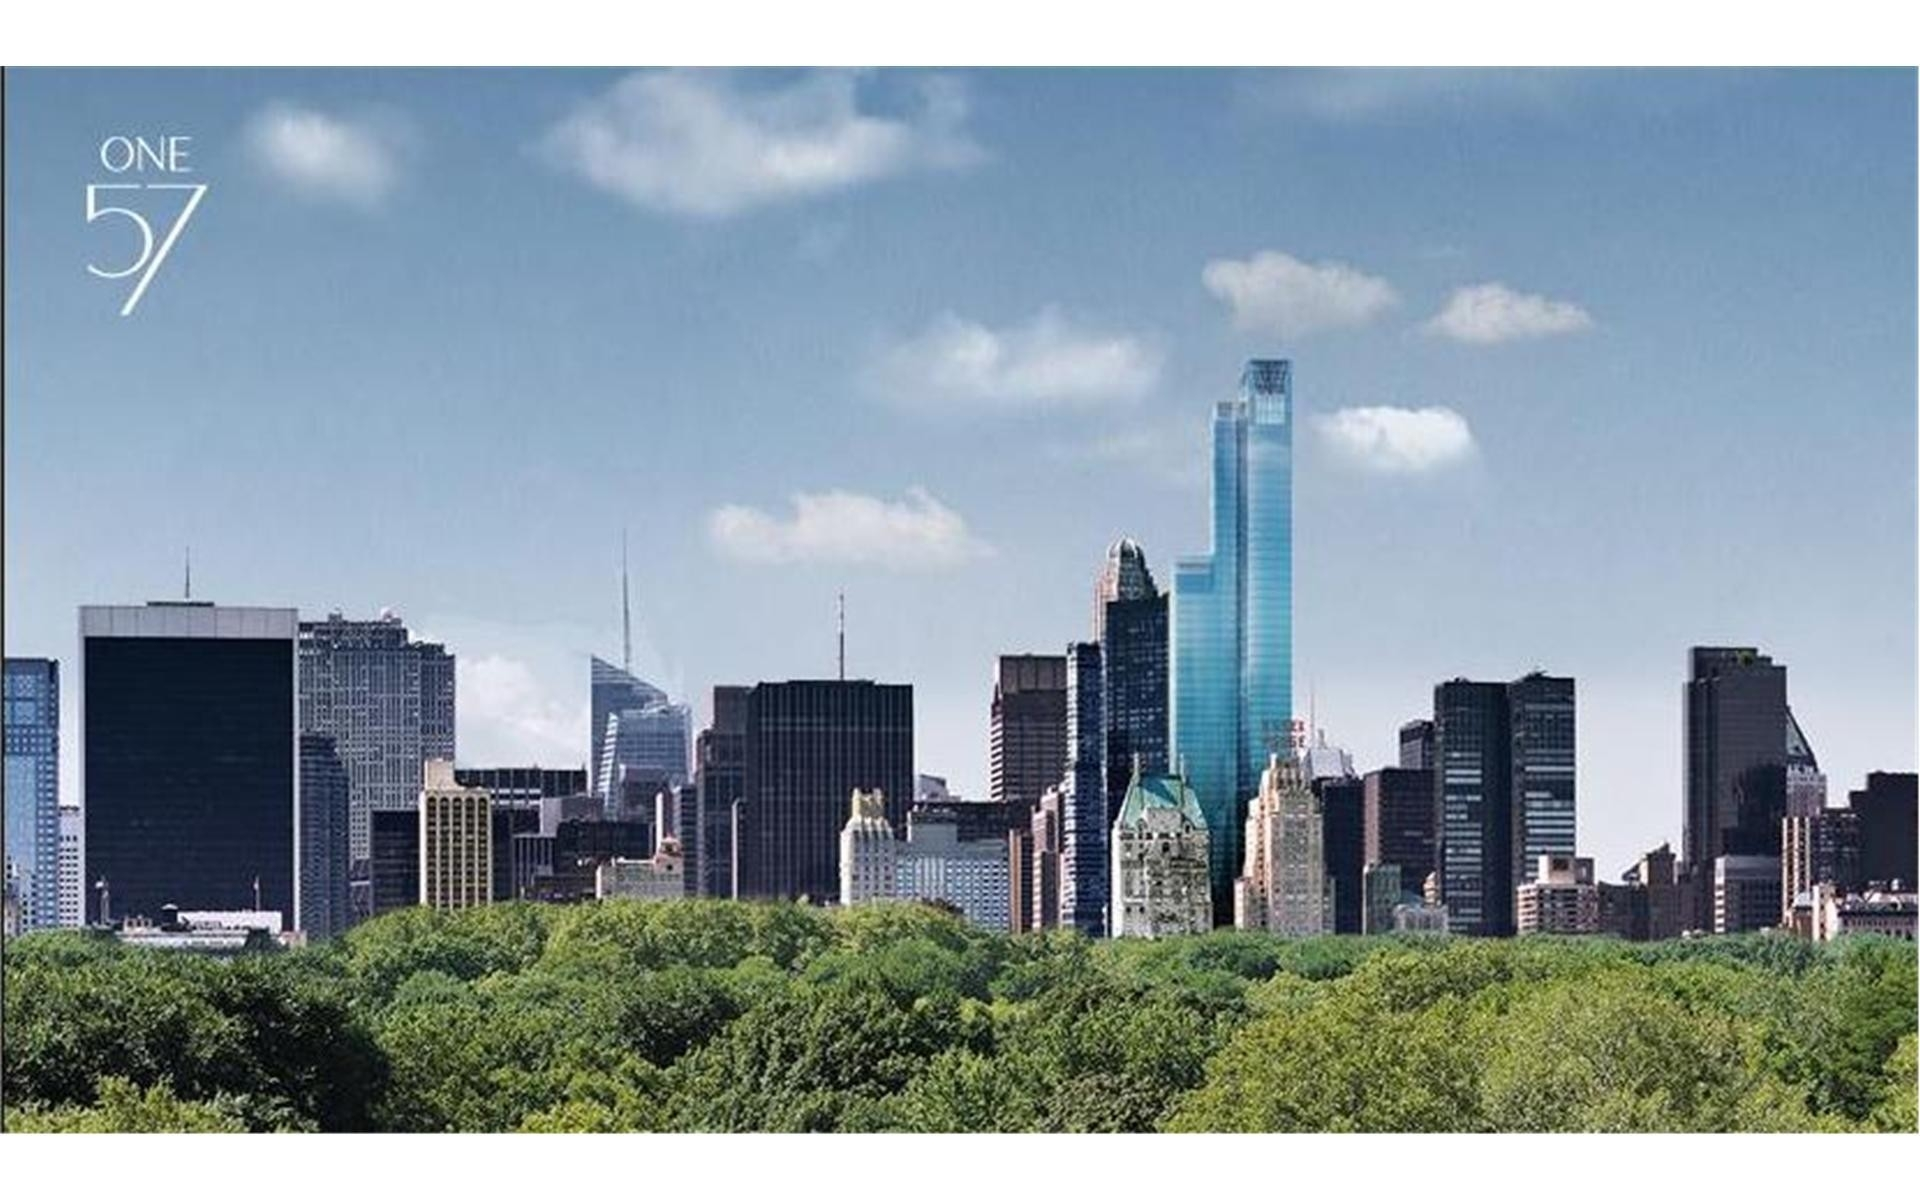 25. Condominiums for Sale at One57, 157 West 57th St, 87 Midtown West, New York, NY 10019